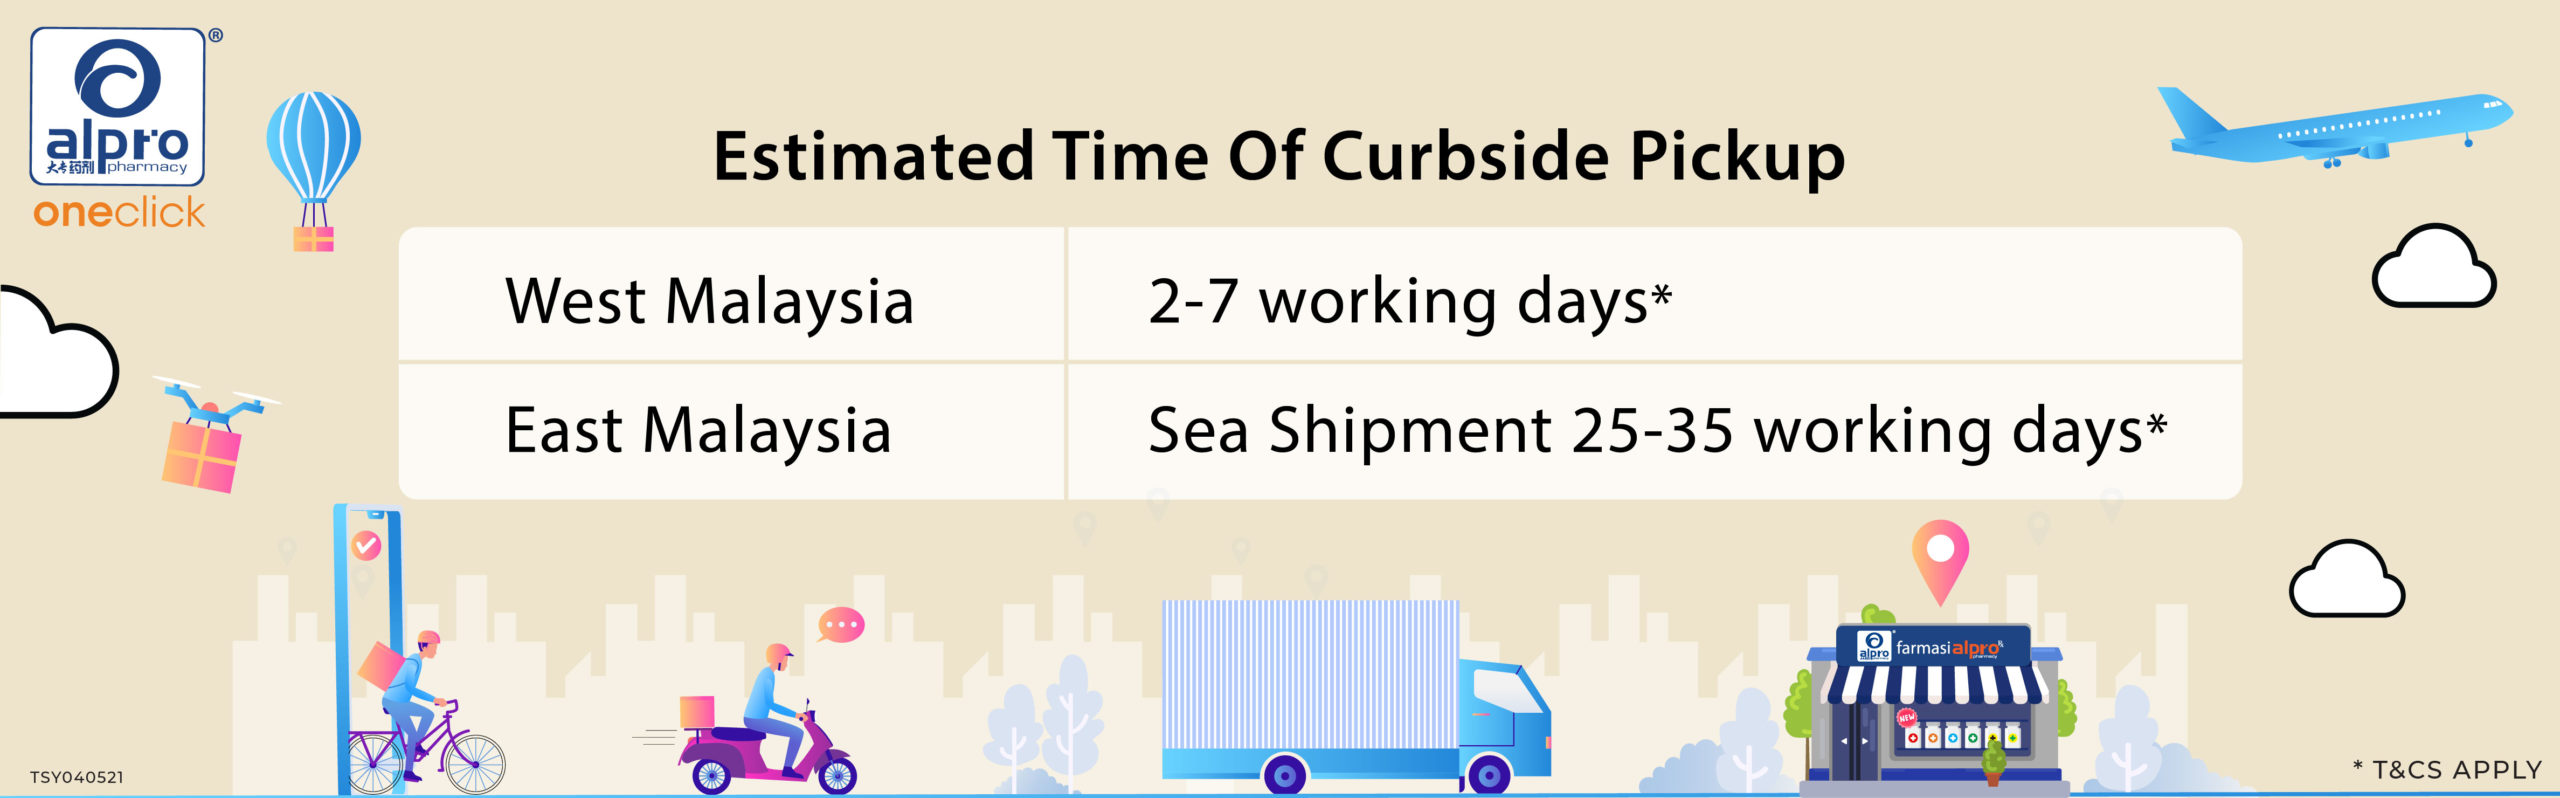 free delivery_duration_Estimated Time Of Curbside Pickup